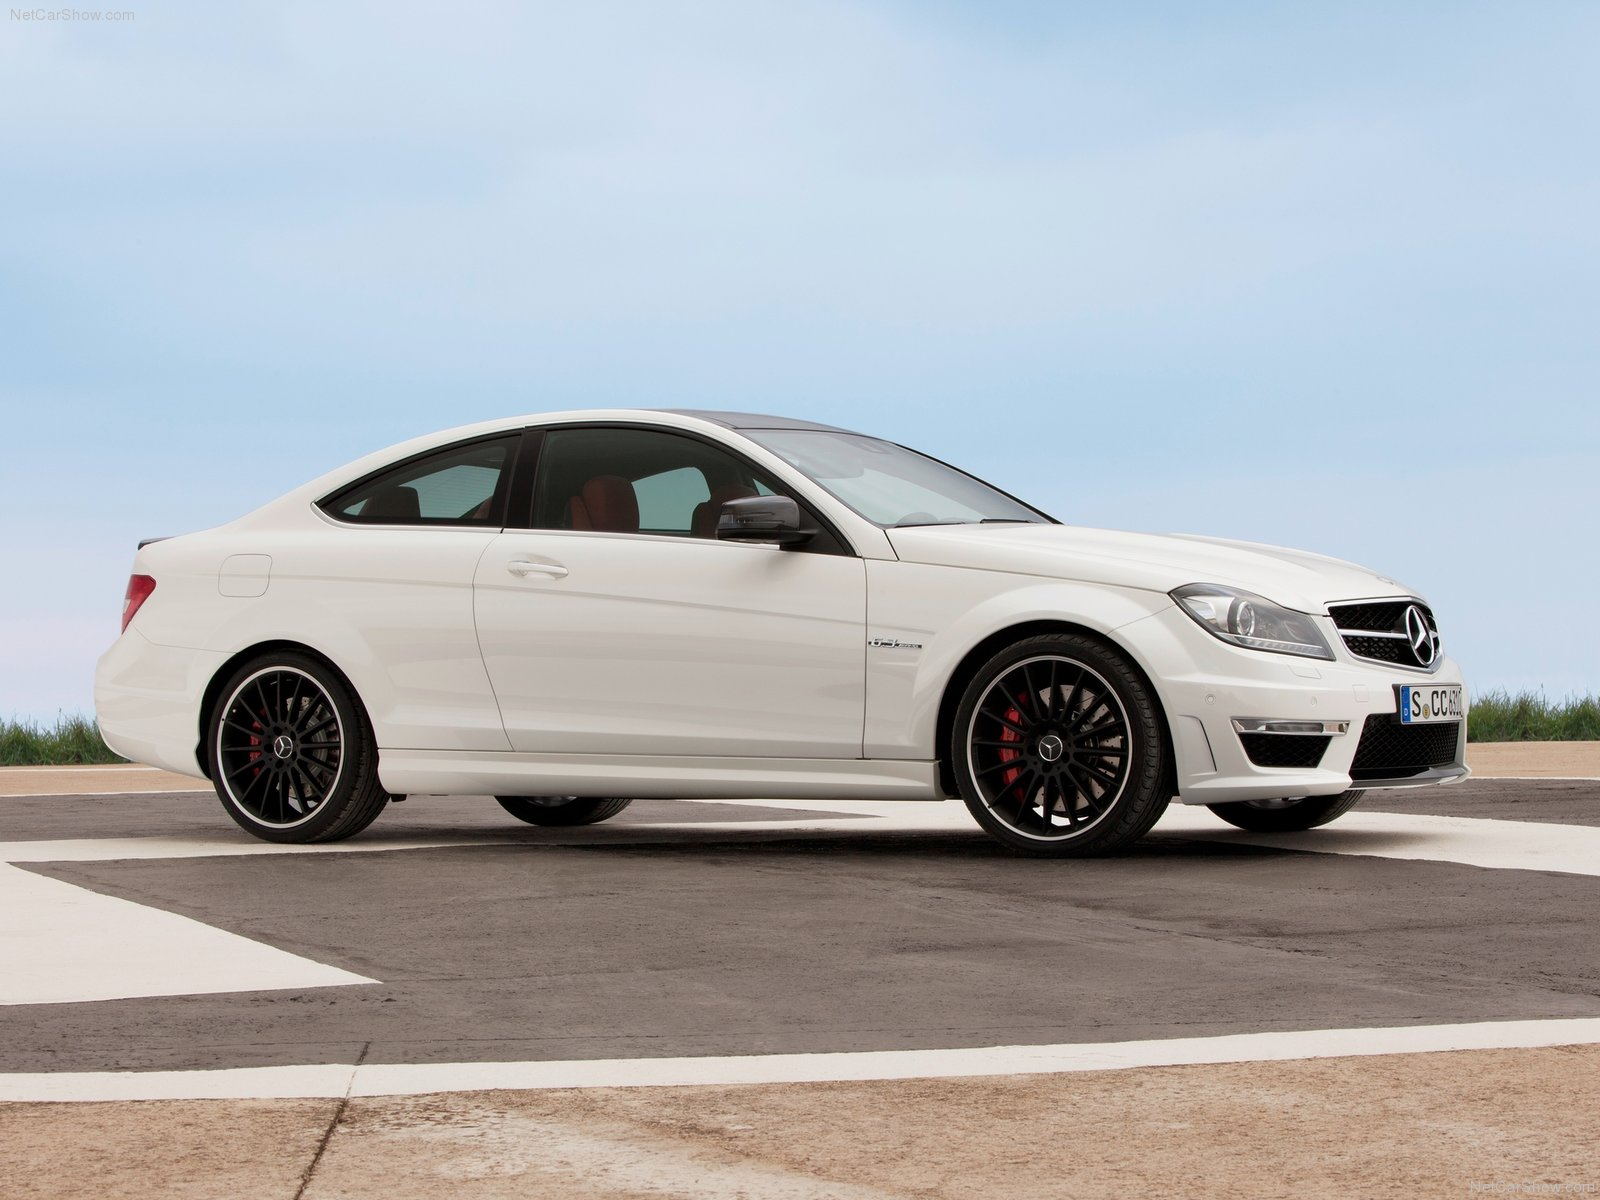 Mercedes benz c63 amg coupe picture 78719 mercedes for Mercedes benz c63 sedan